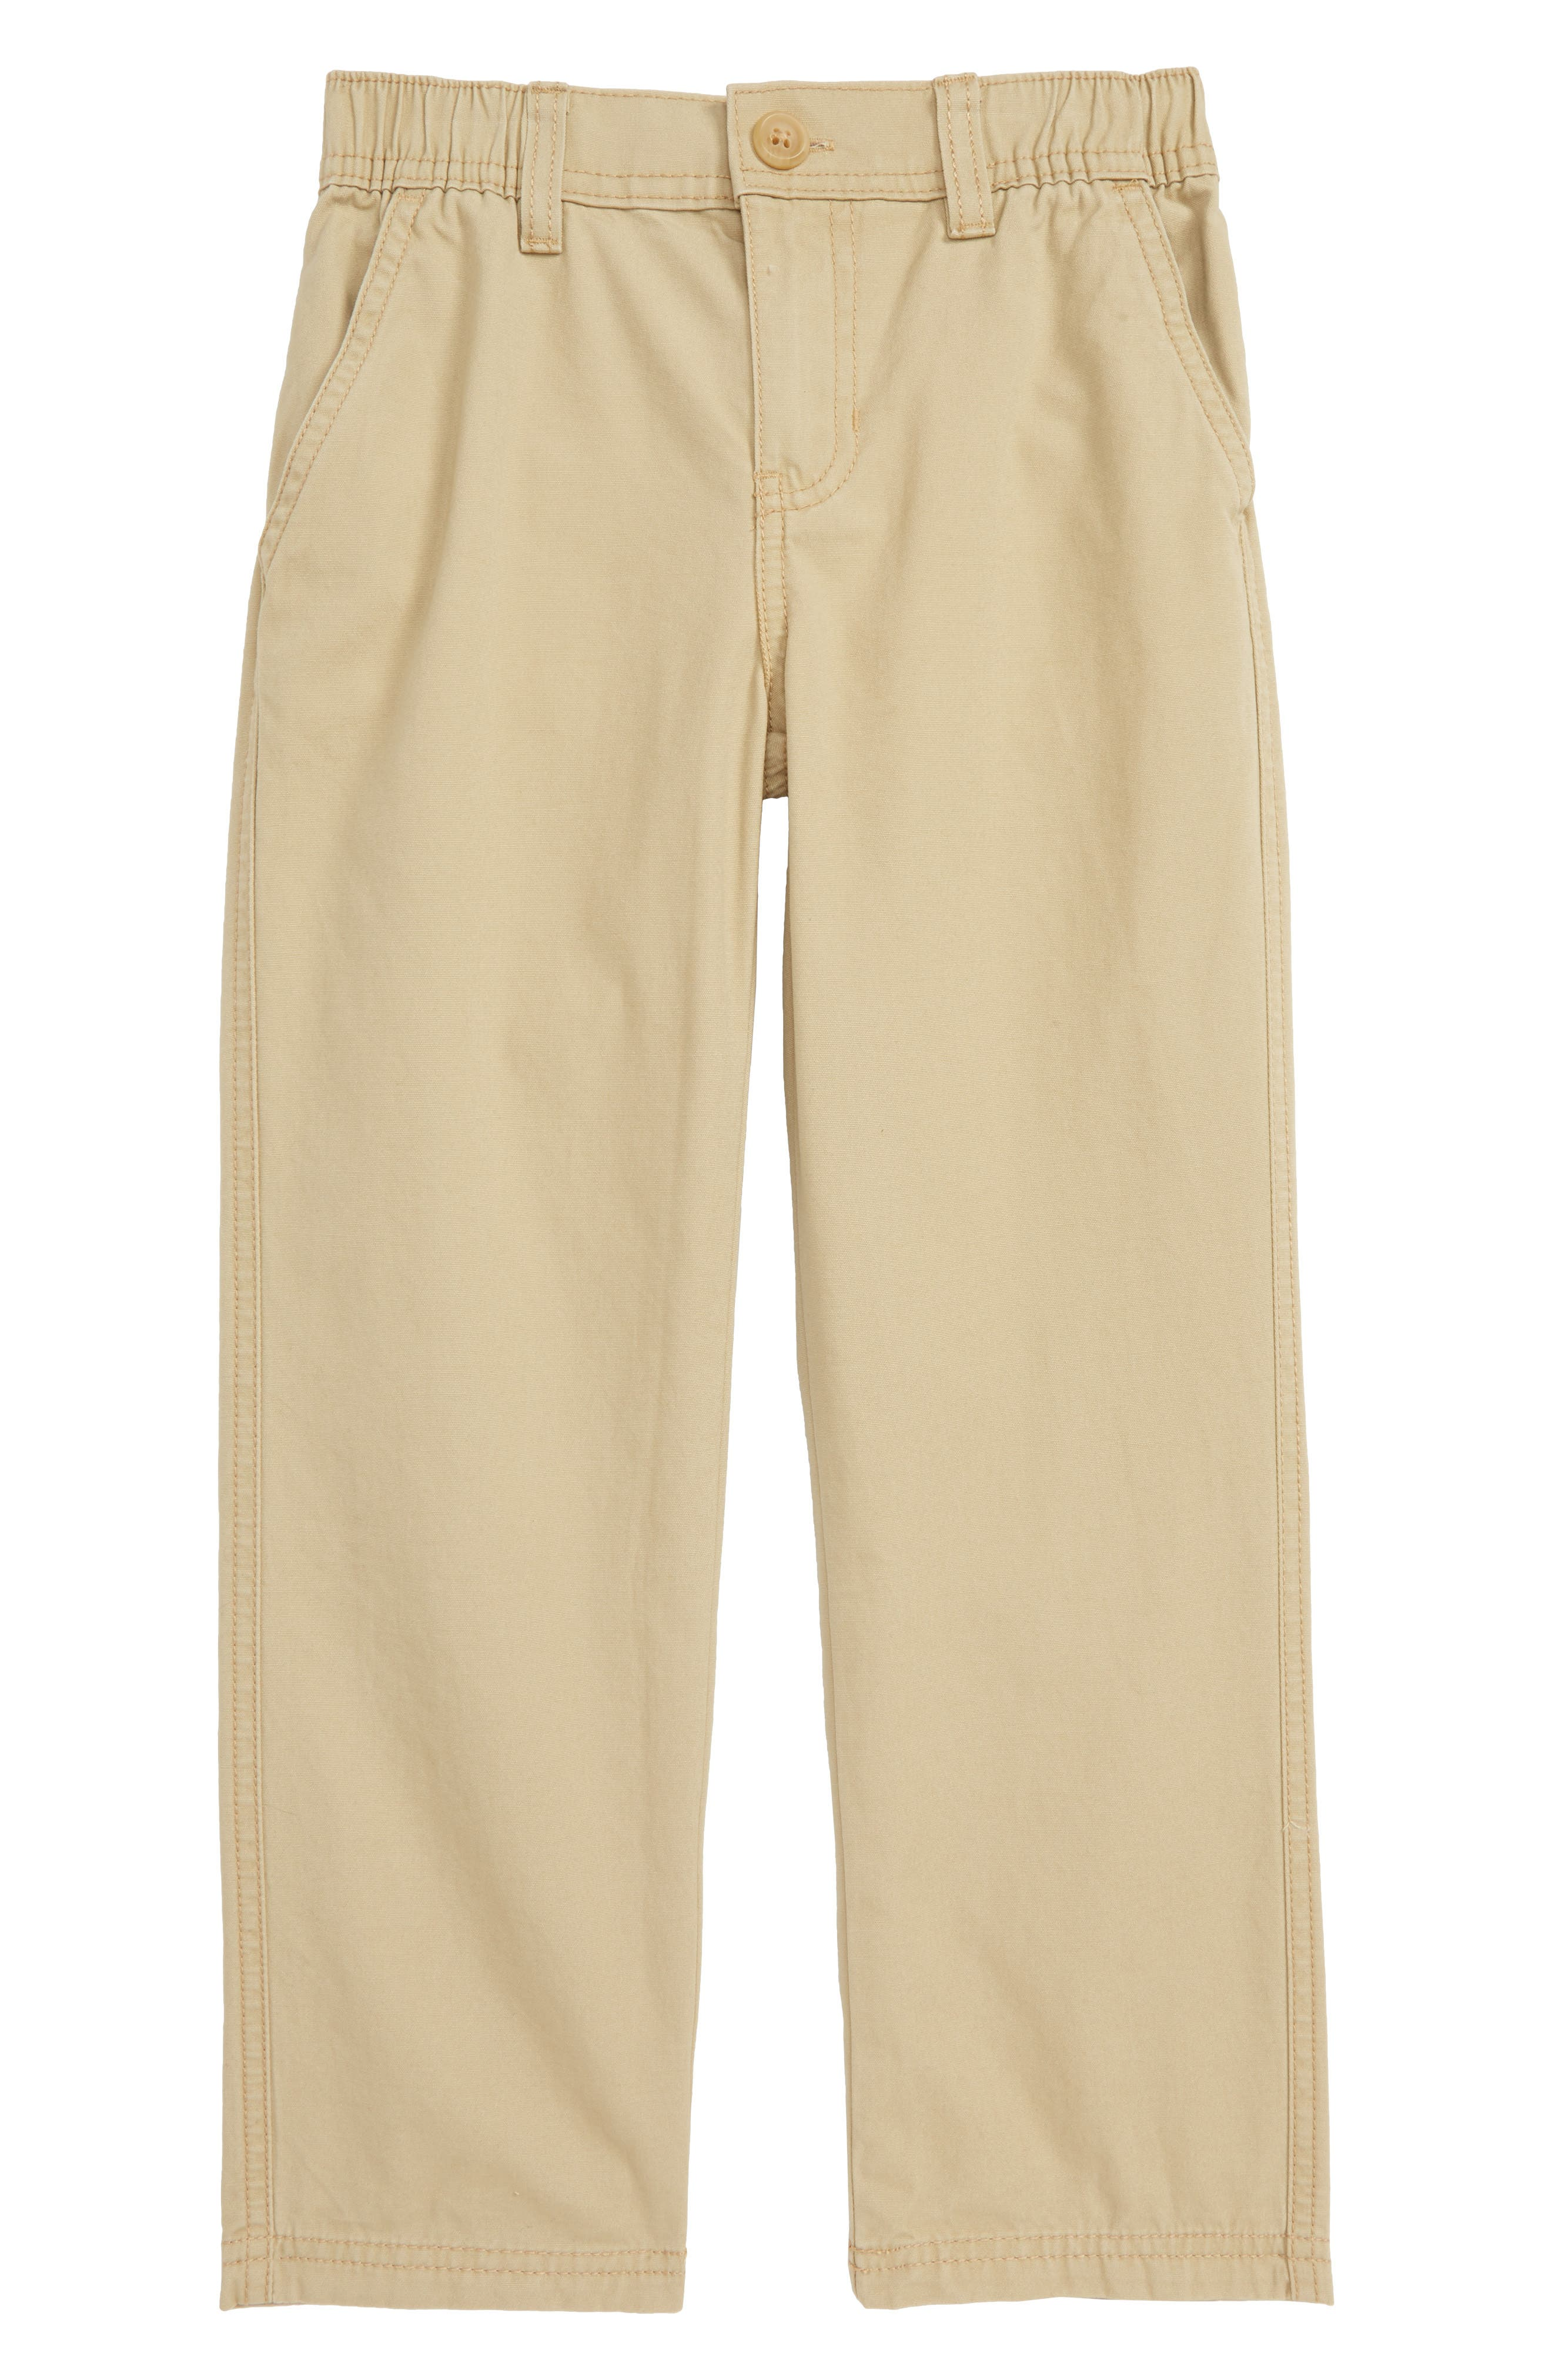 Toddler Boys Tea Collection Canvas Chino Pants Size 3T  Brown